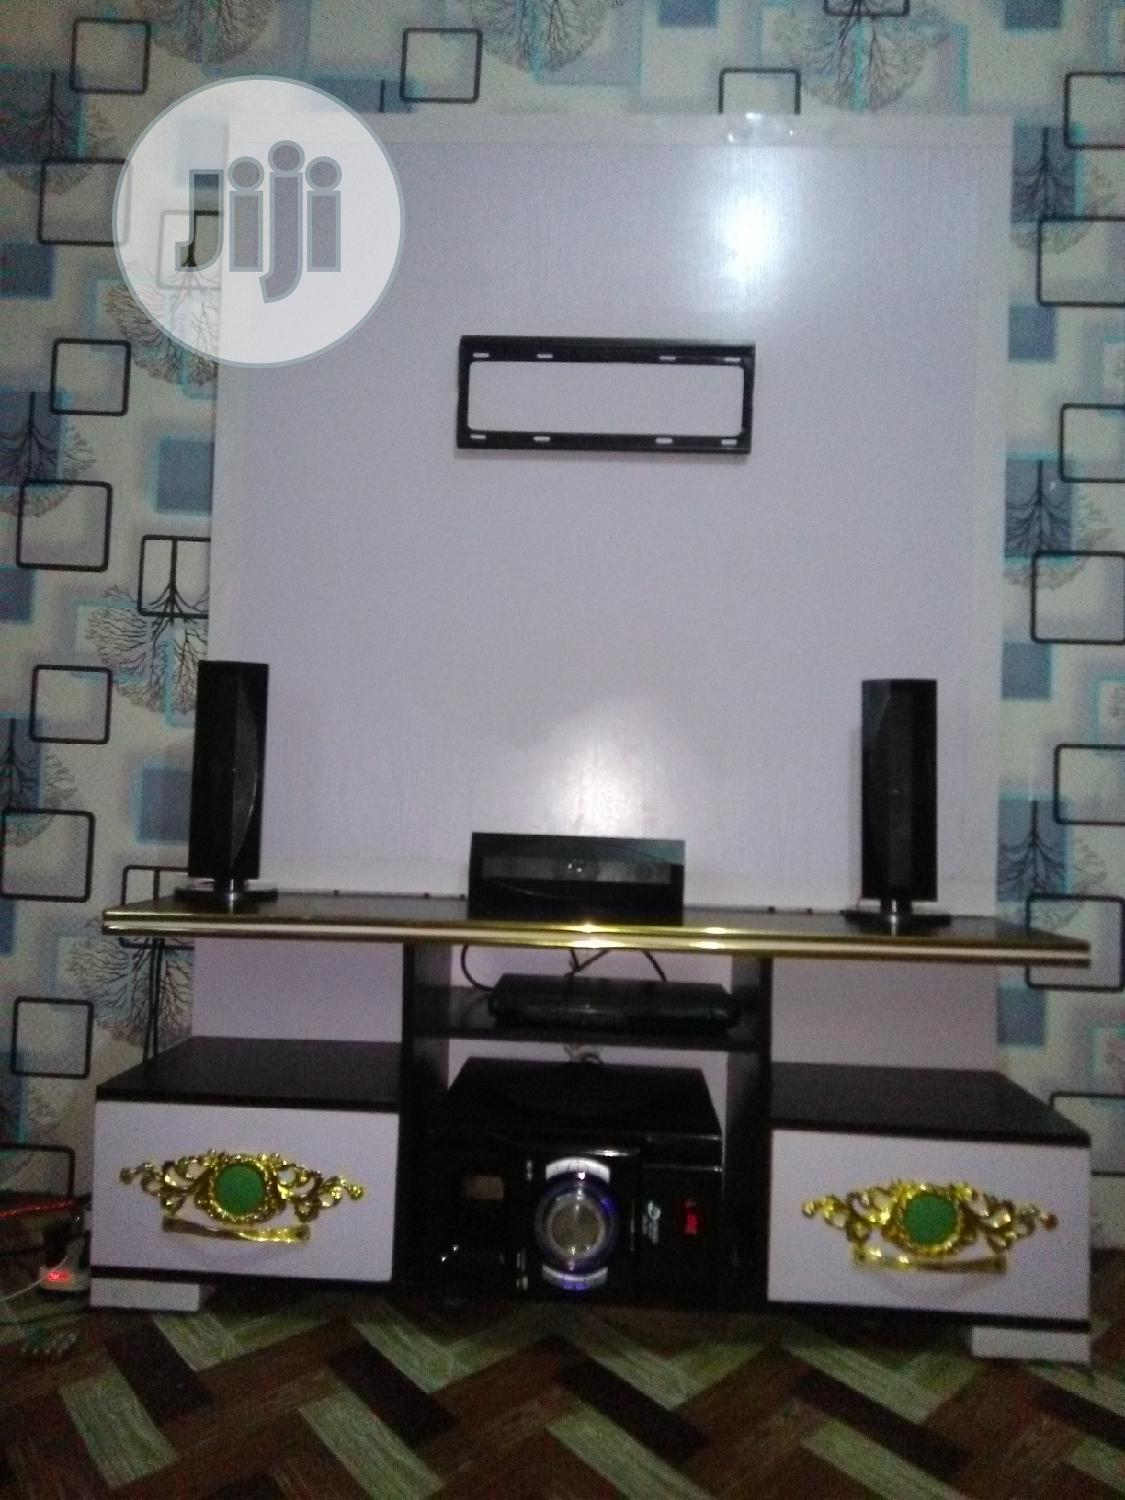 Quality Tv Stand | Furniture for sale in Onitsha, Anambra State, Nigeria